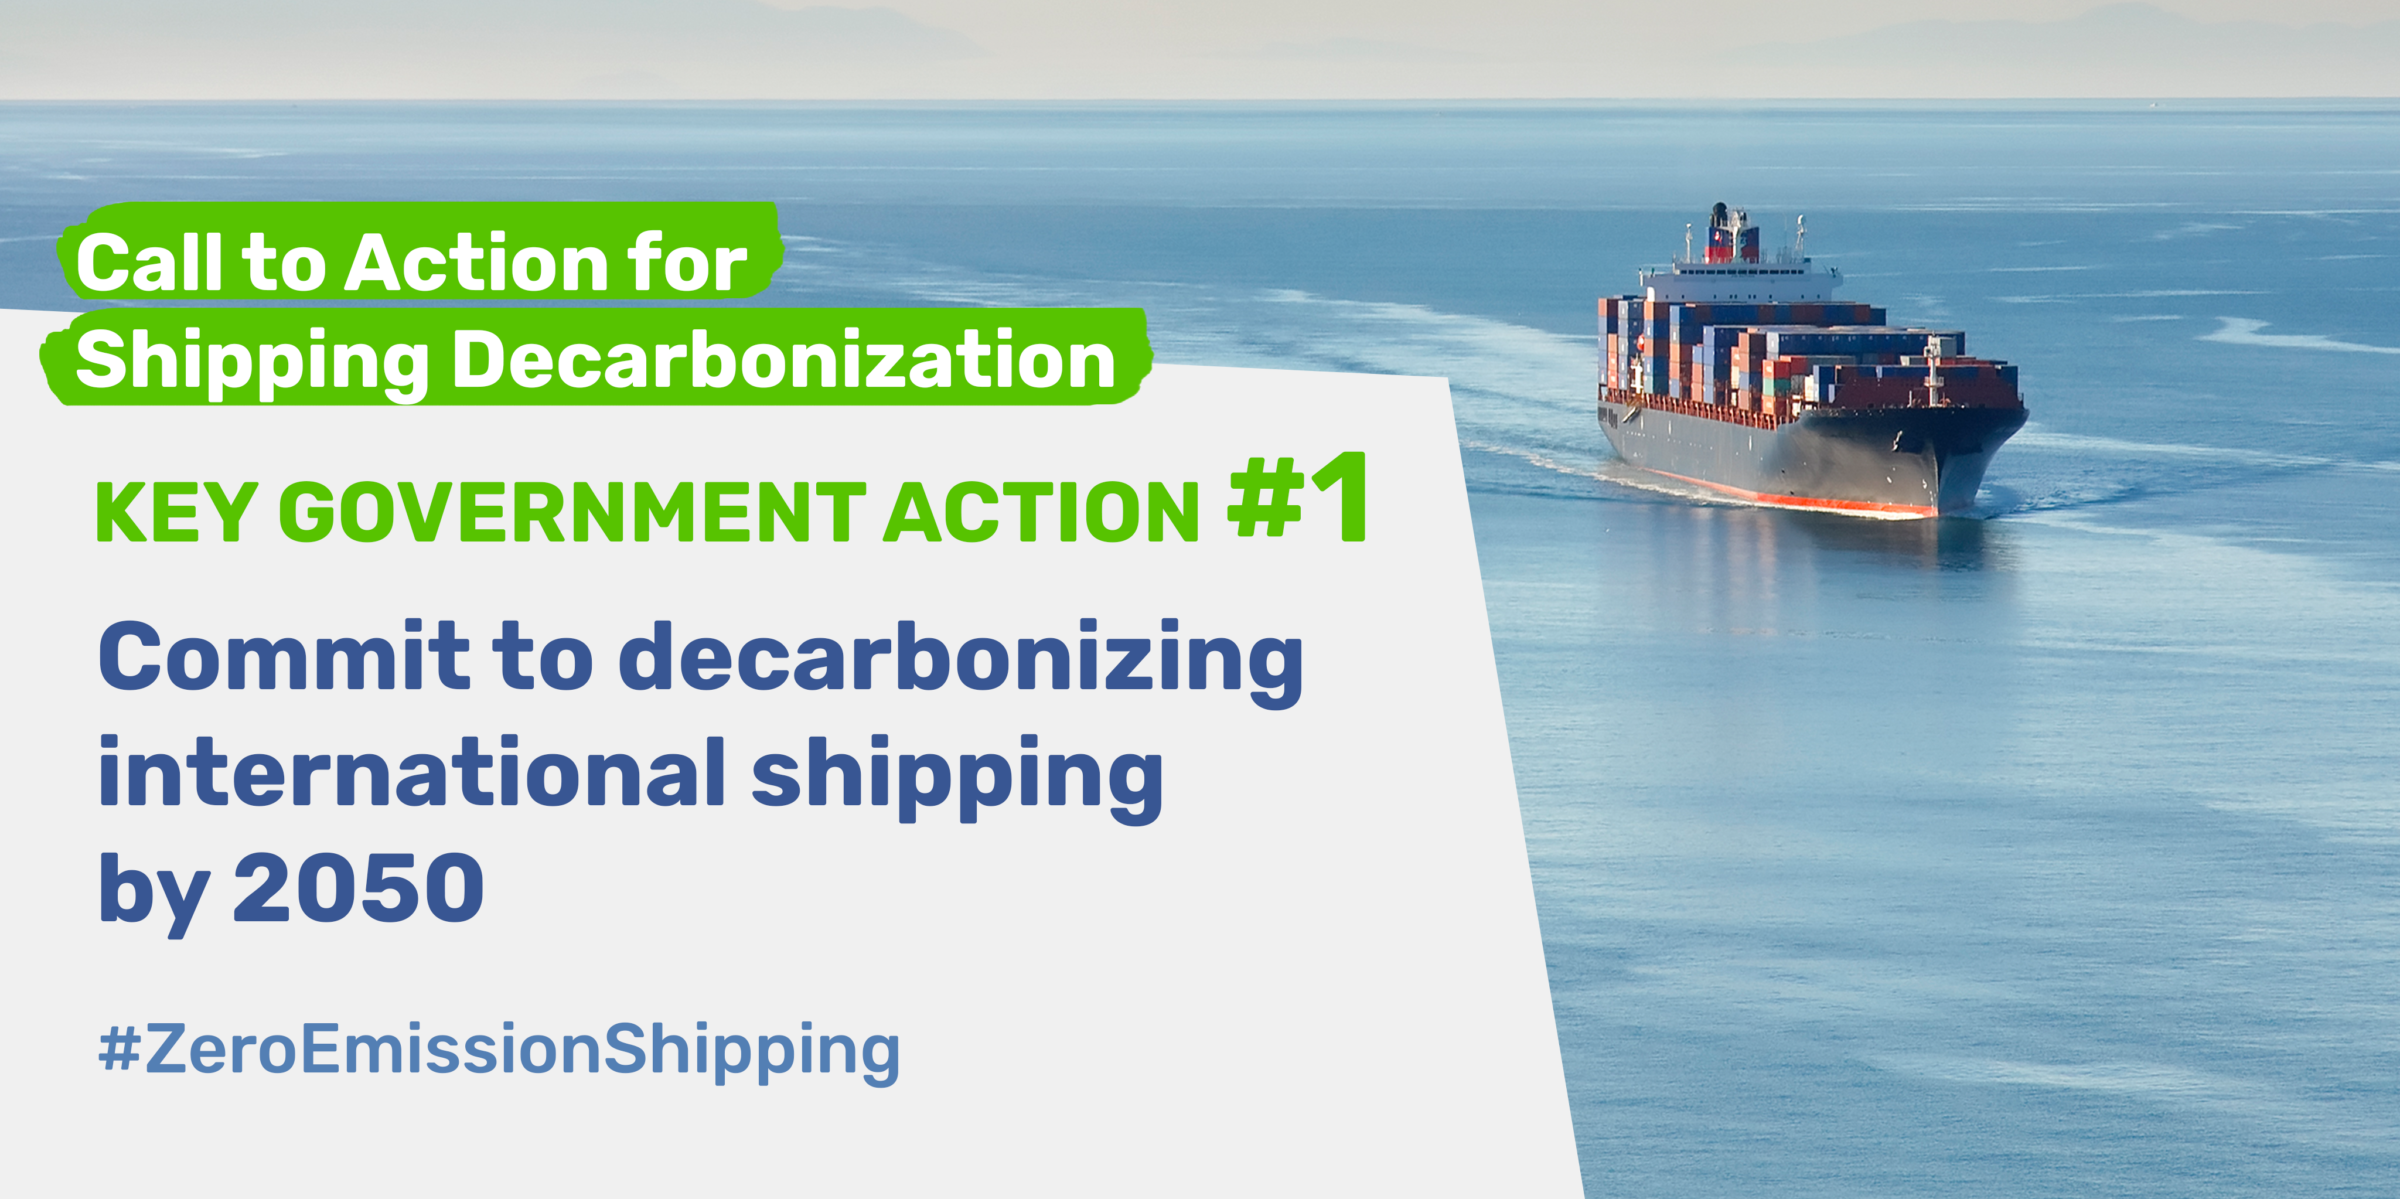 Industry leaders & organizations call for decisive government action to enable full decarbonization of international shipping by 2050